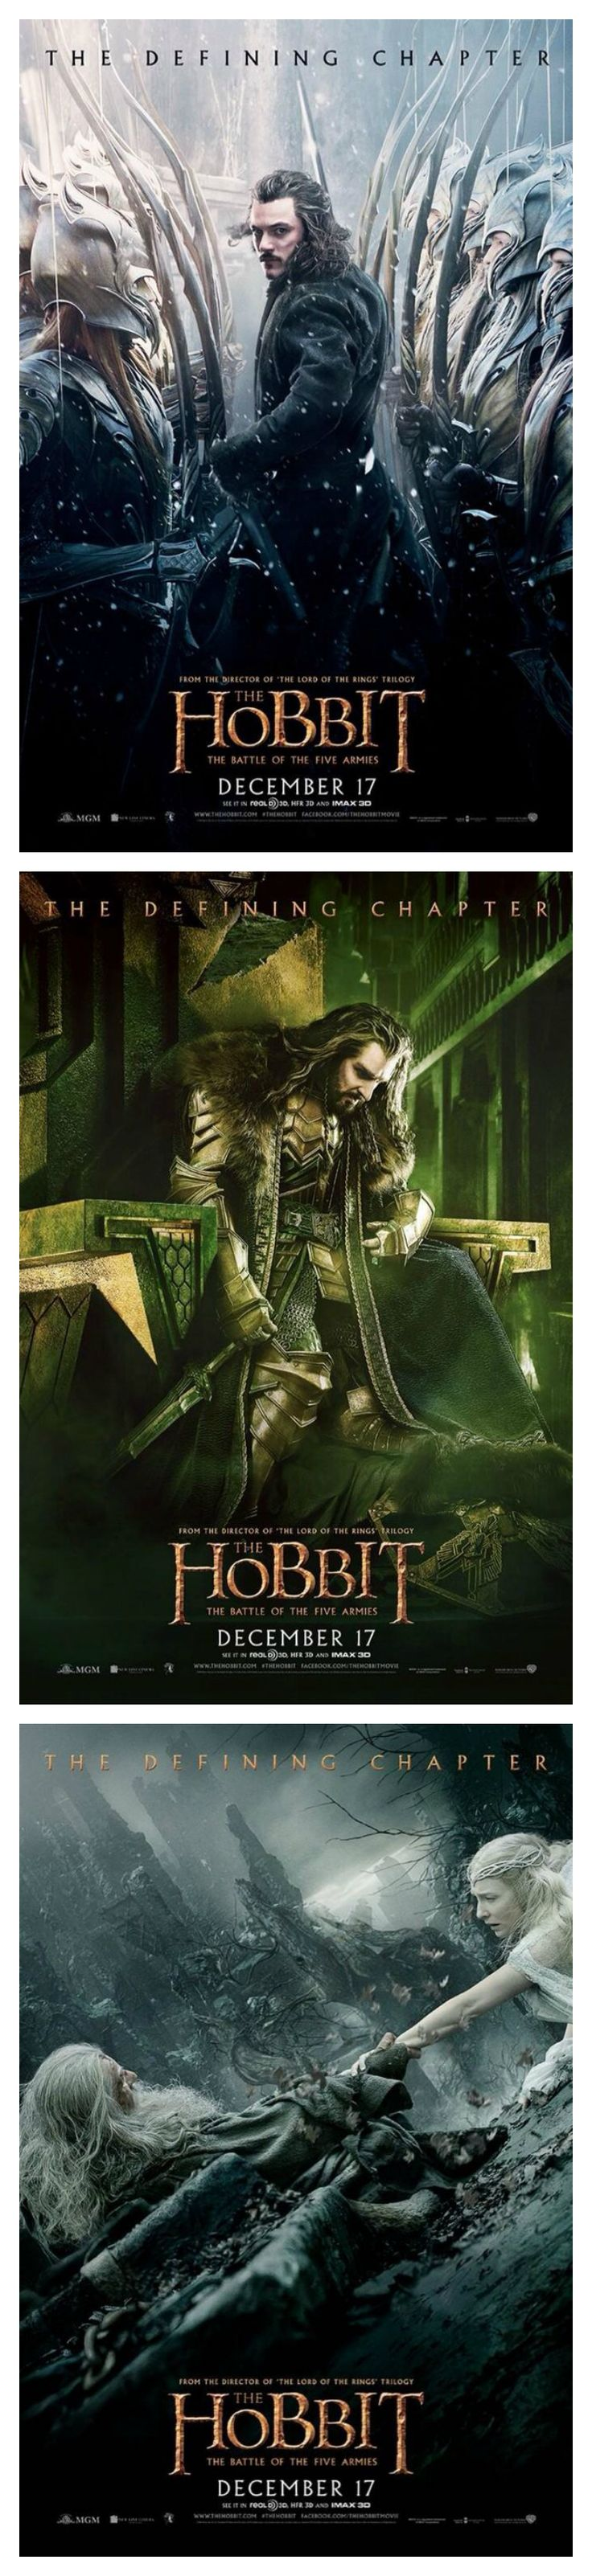 The Hobbit: The Battle of the Five Armies. On top of everything that's going to happen, I'm going to cry like I did with ROTK simply because it's over